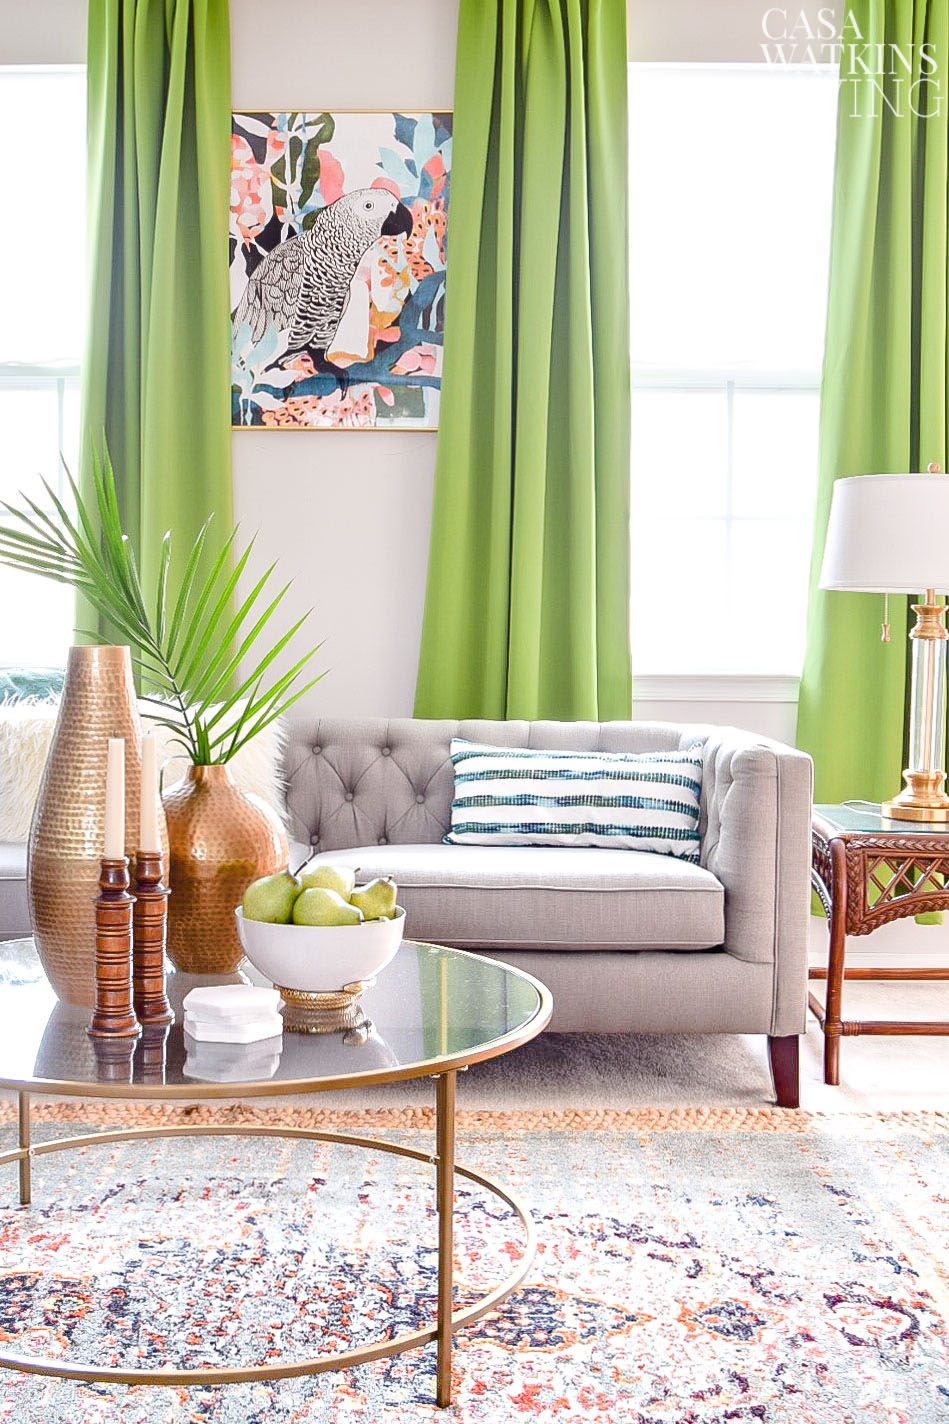 Green and gray global eclectic contemporary style living room